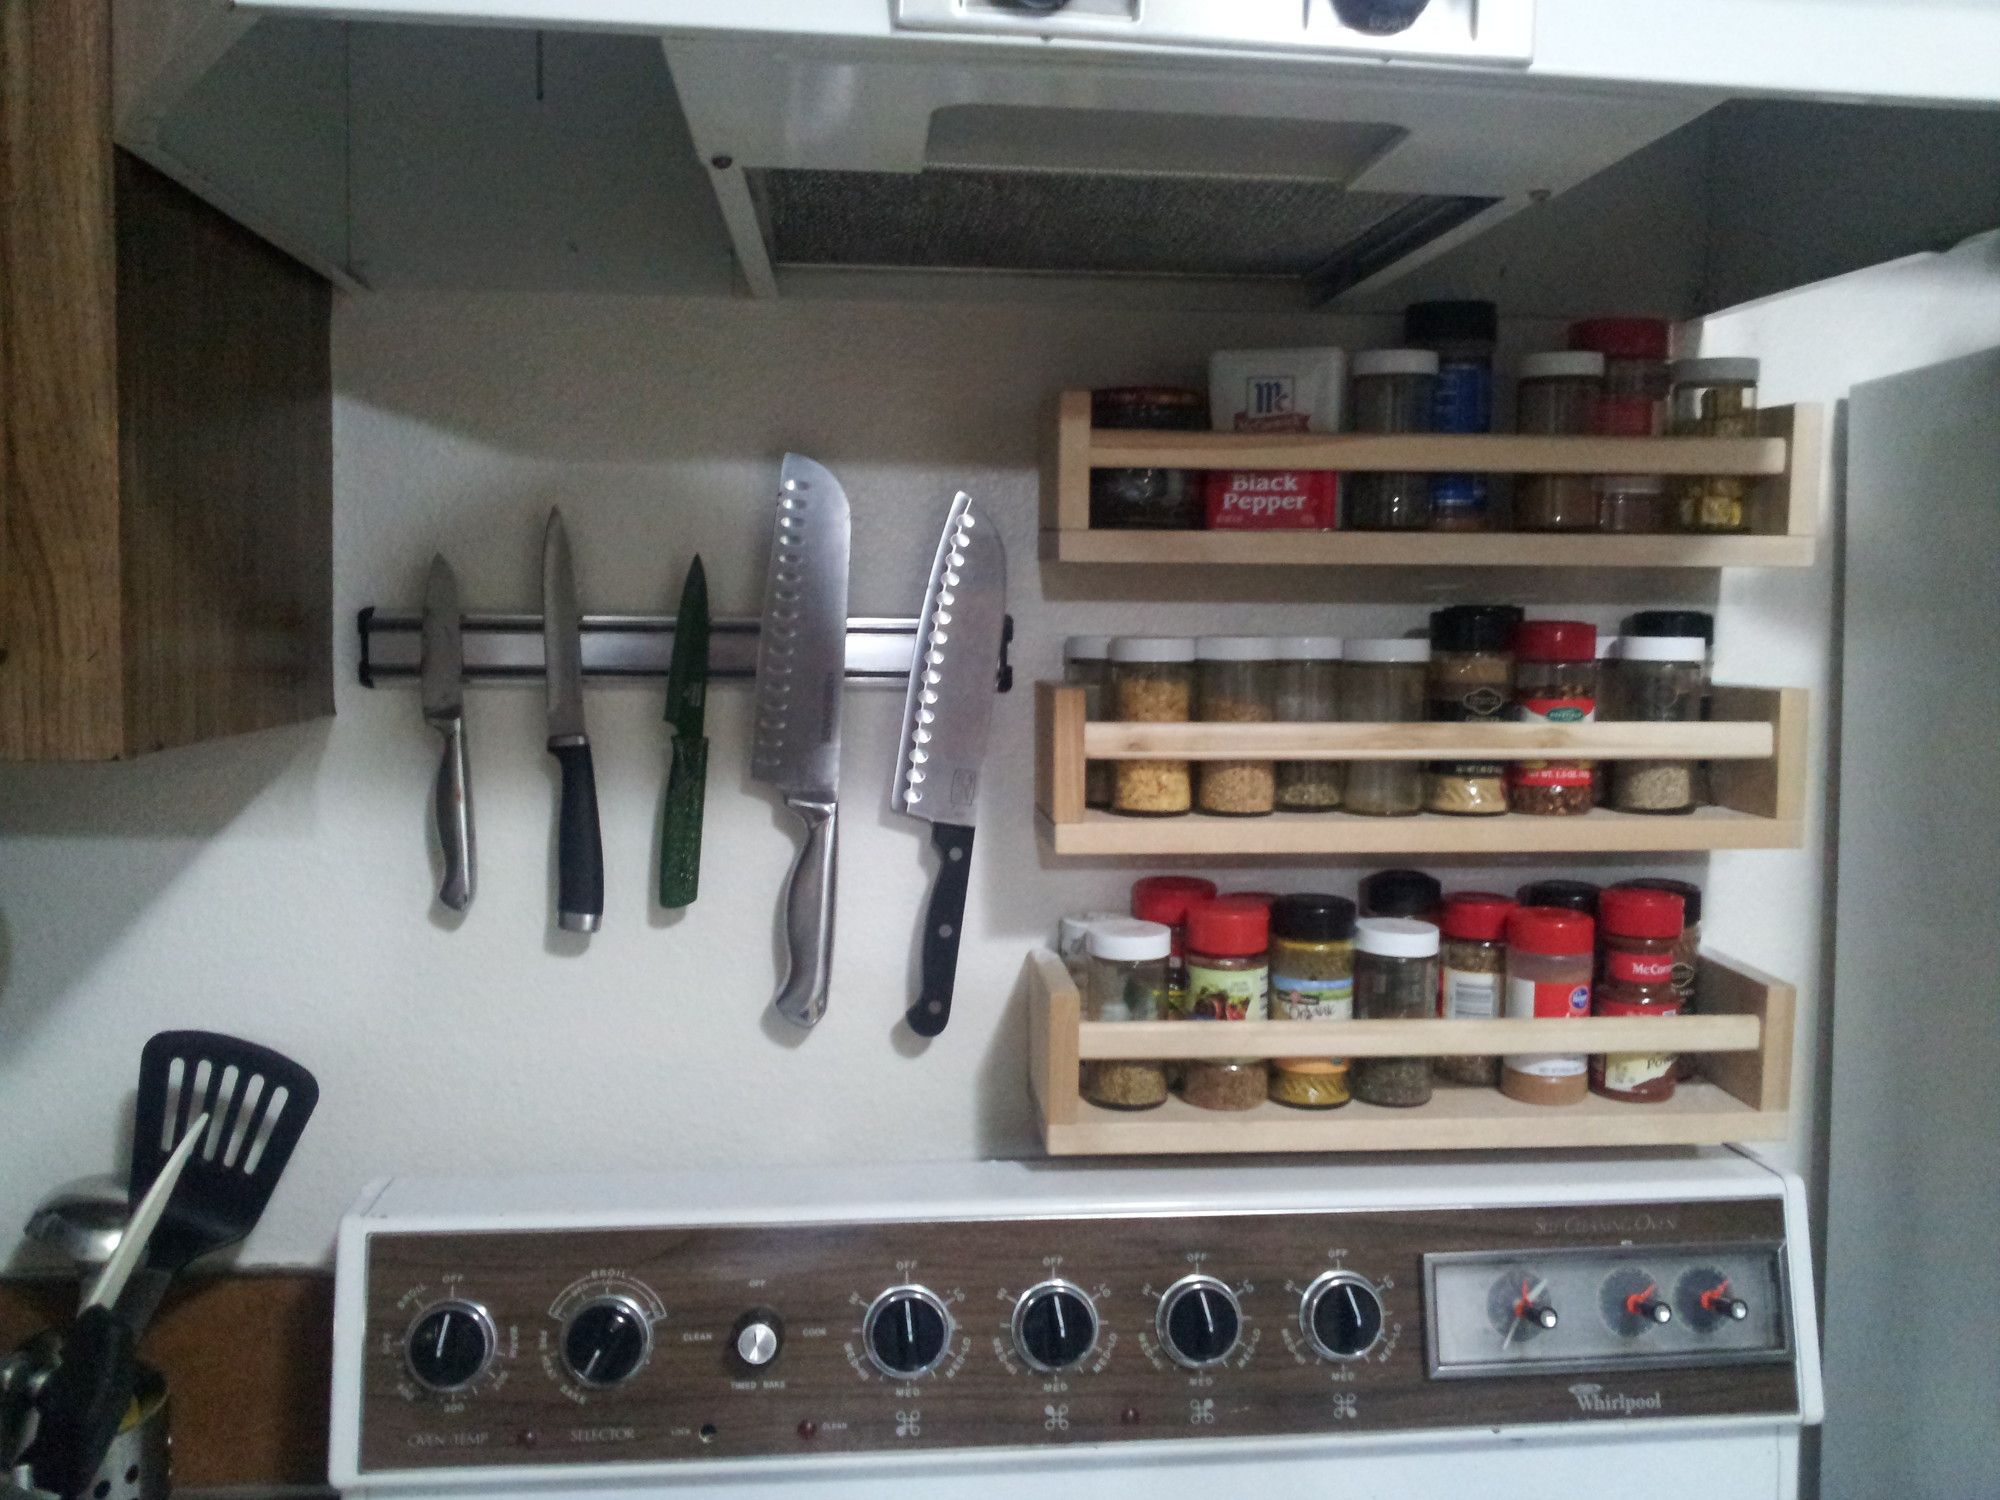 Stainless steel spice rack wall mount - Shelves Knives And Spice Racks